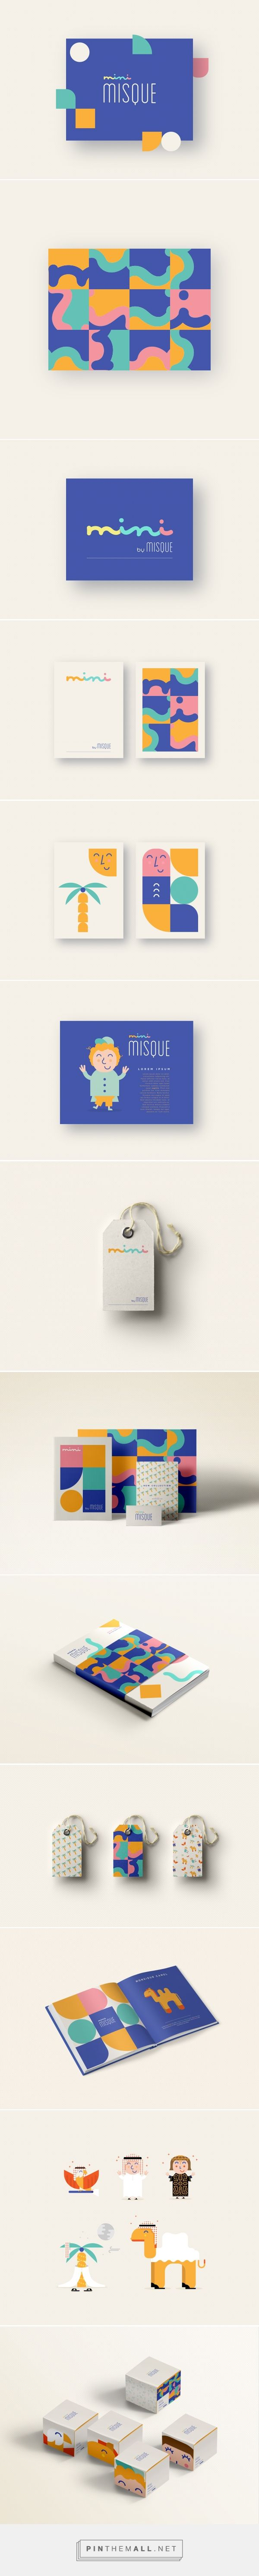 Mini Misque Branding on Behance